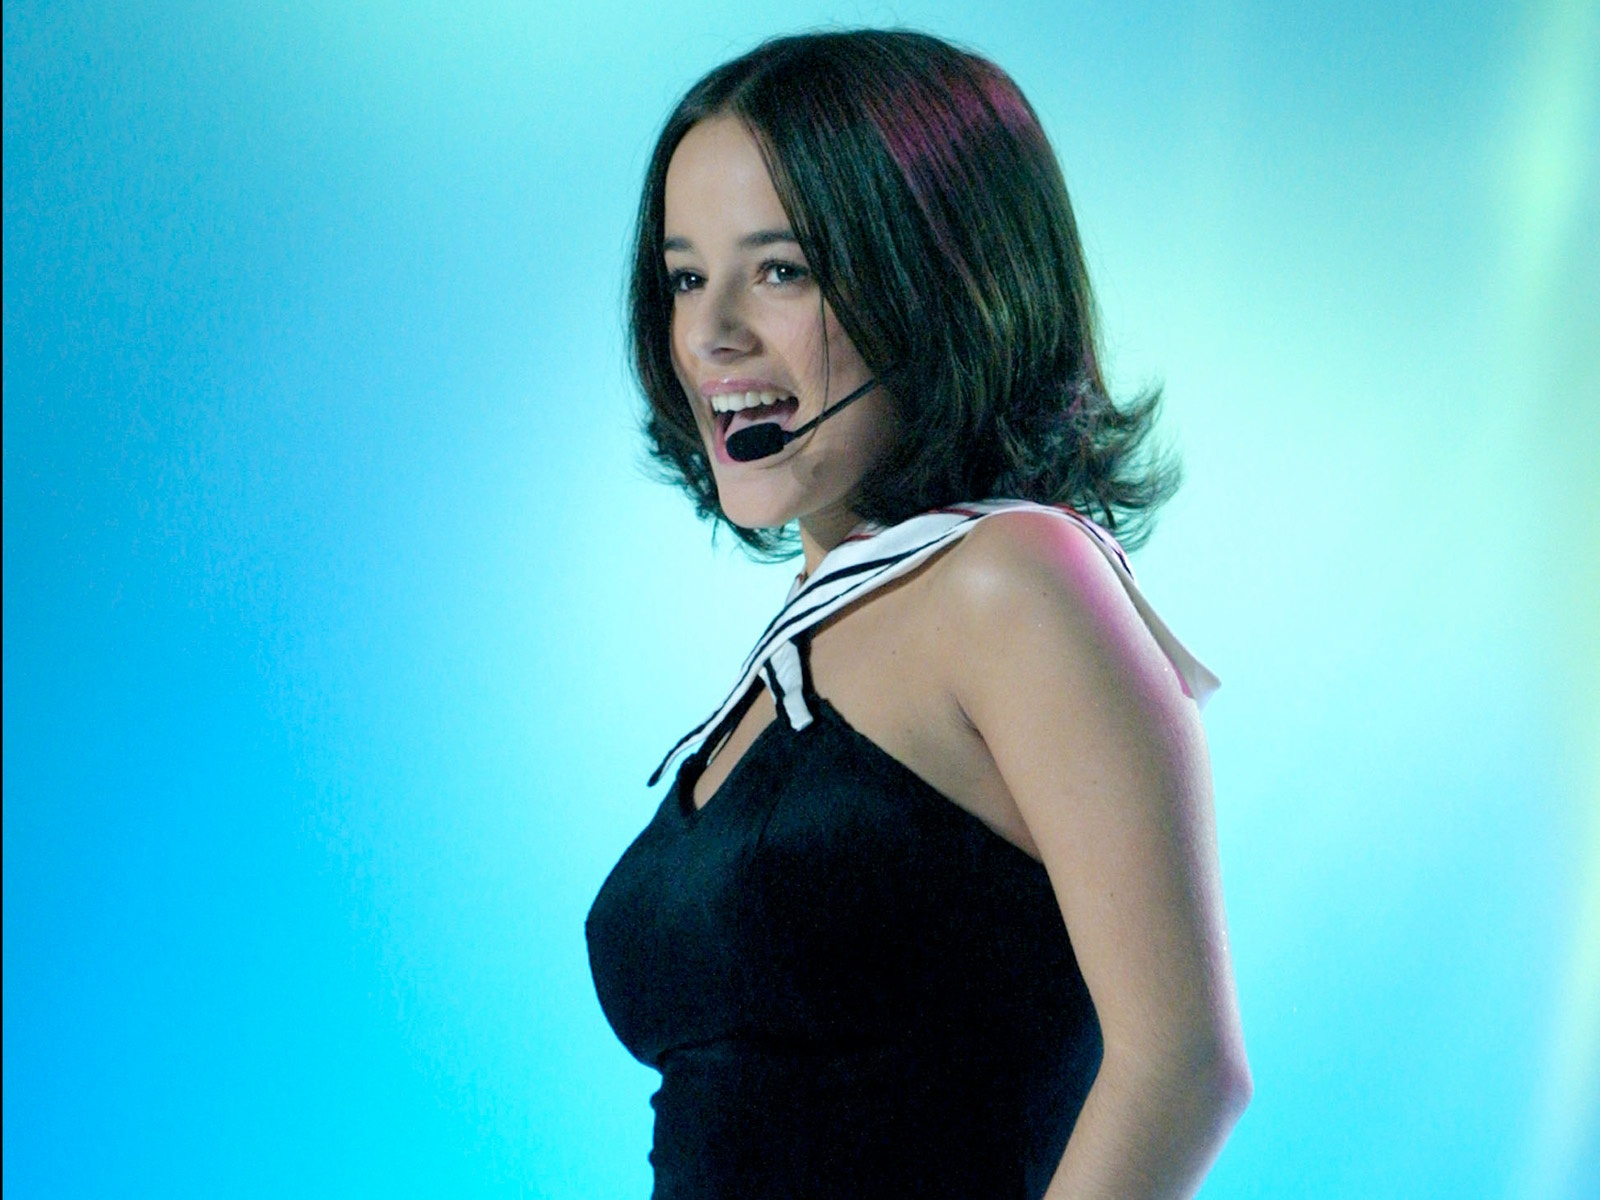 alizee images hd A6